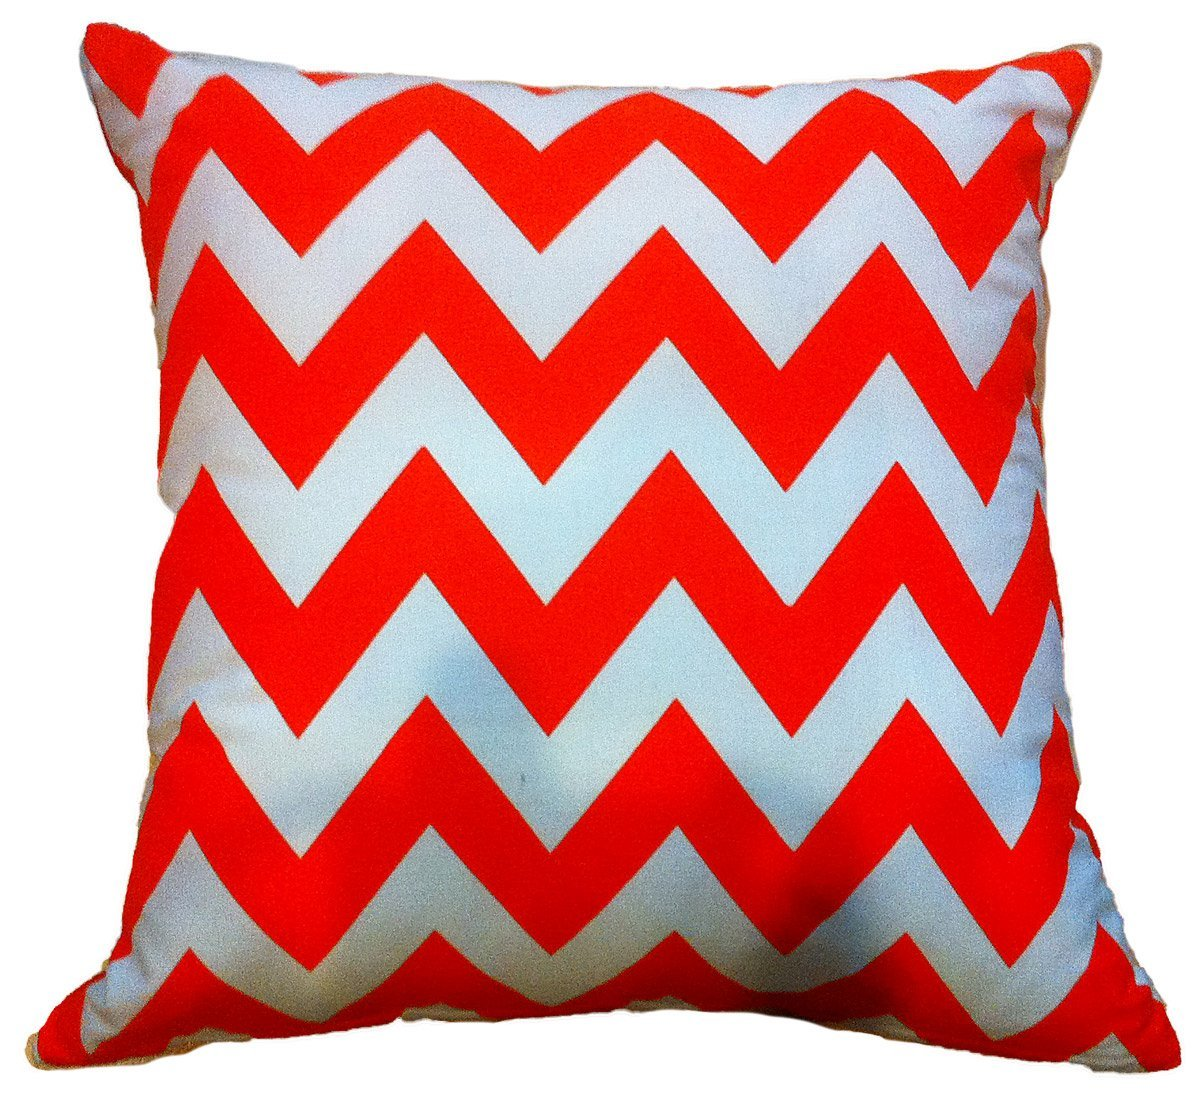 "Artiwa Contemporary Zig Zag Orange and White 18""x18"" Canvas Cotton Sofa Bed Throw Decorative Pillow Case, Gift Idea"